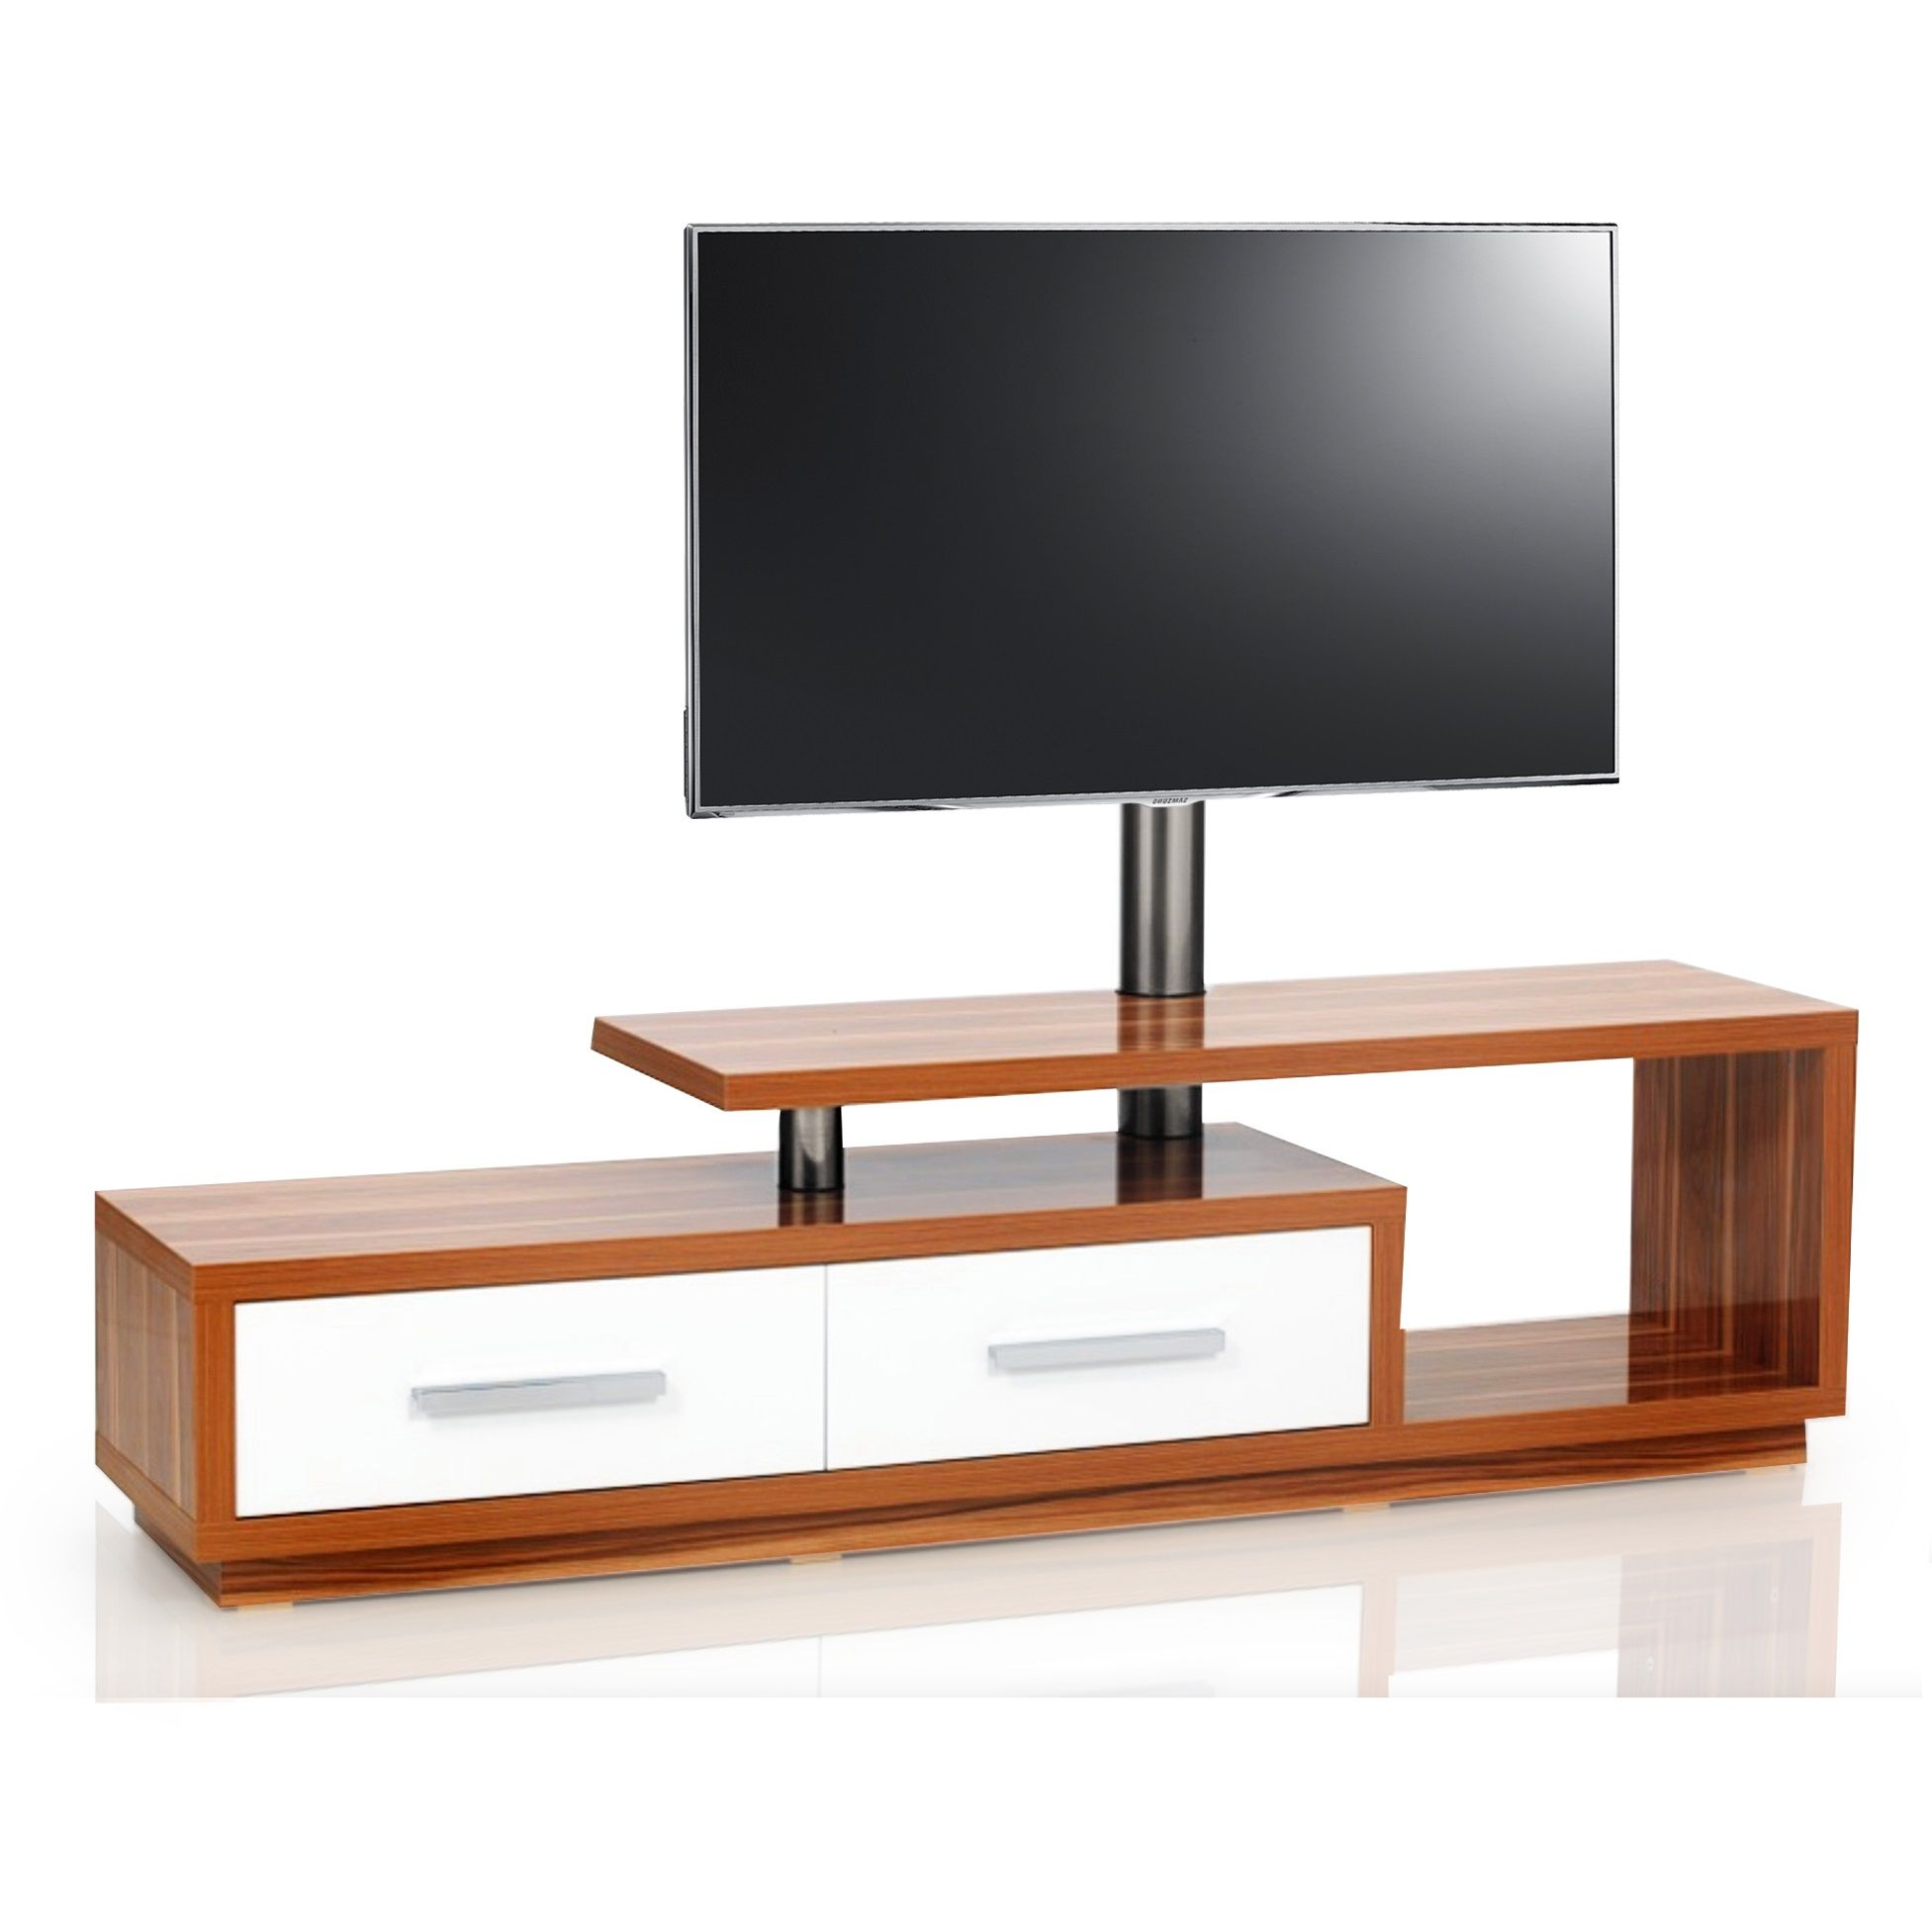 Modeles Tables Tv Plasma De Salon - Stunning Tables De Television Contemporary Joshkrajcik Us [mjhdah]https://i.pinimg.com/originals/b3/cf/3c/b3cf3cdd2cc093078c41764835fd50a2.jpg